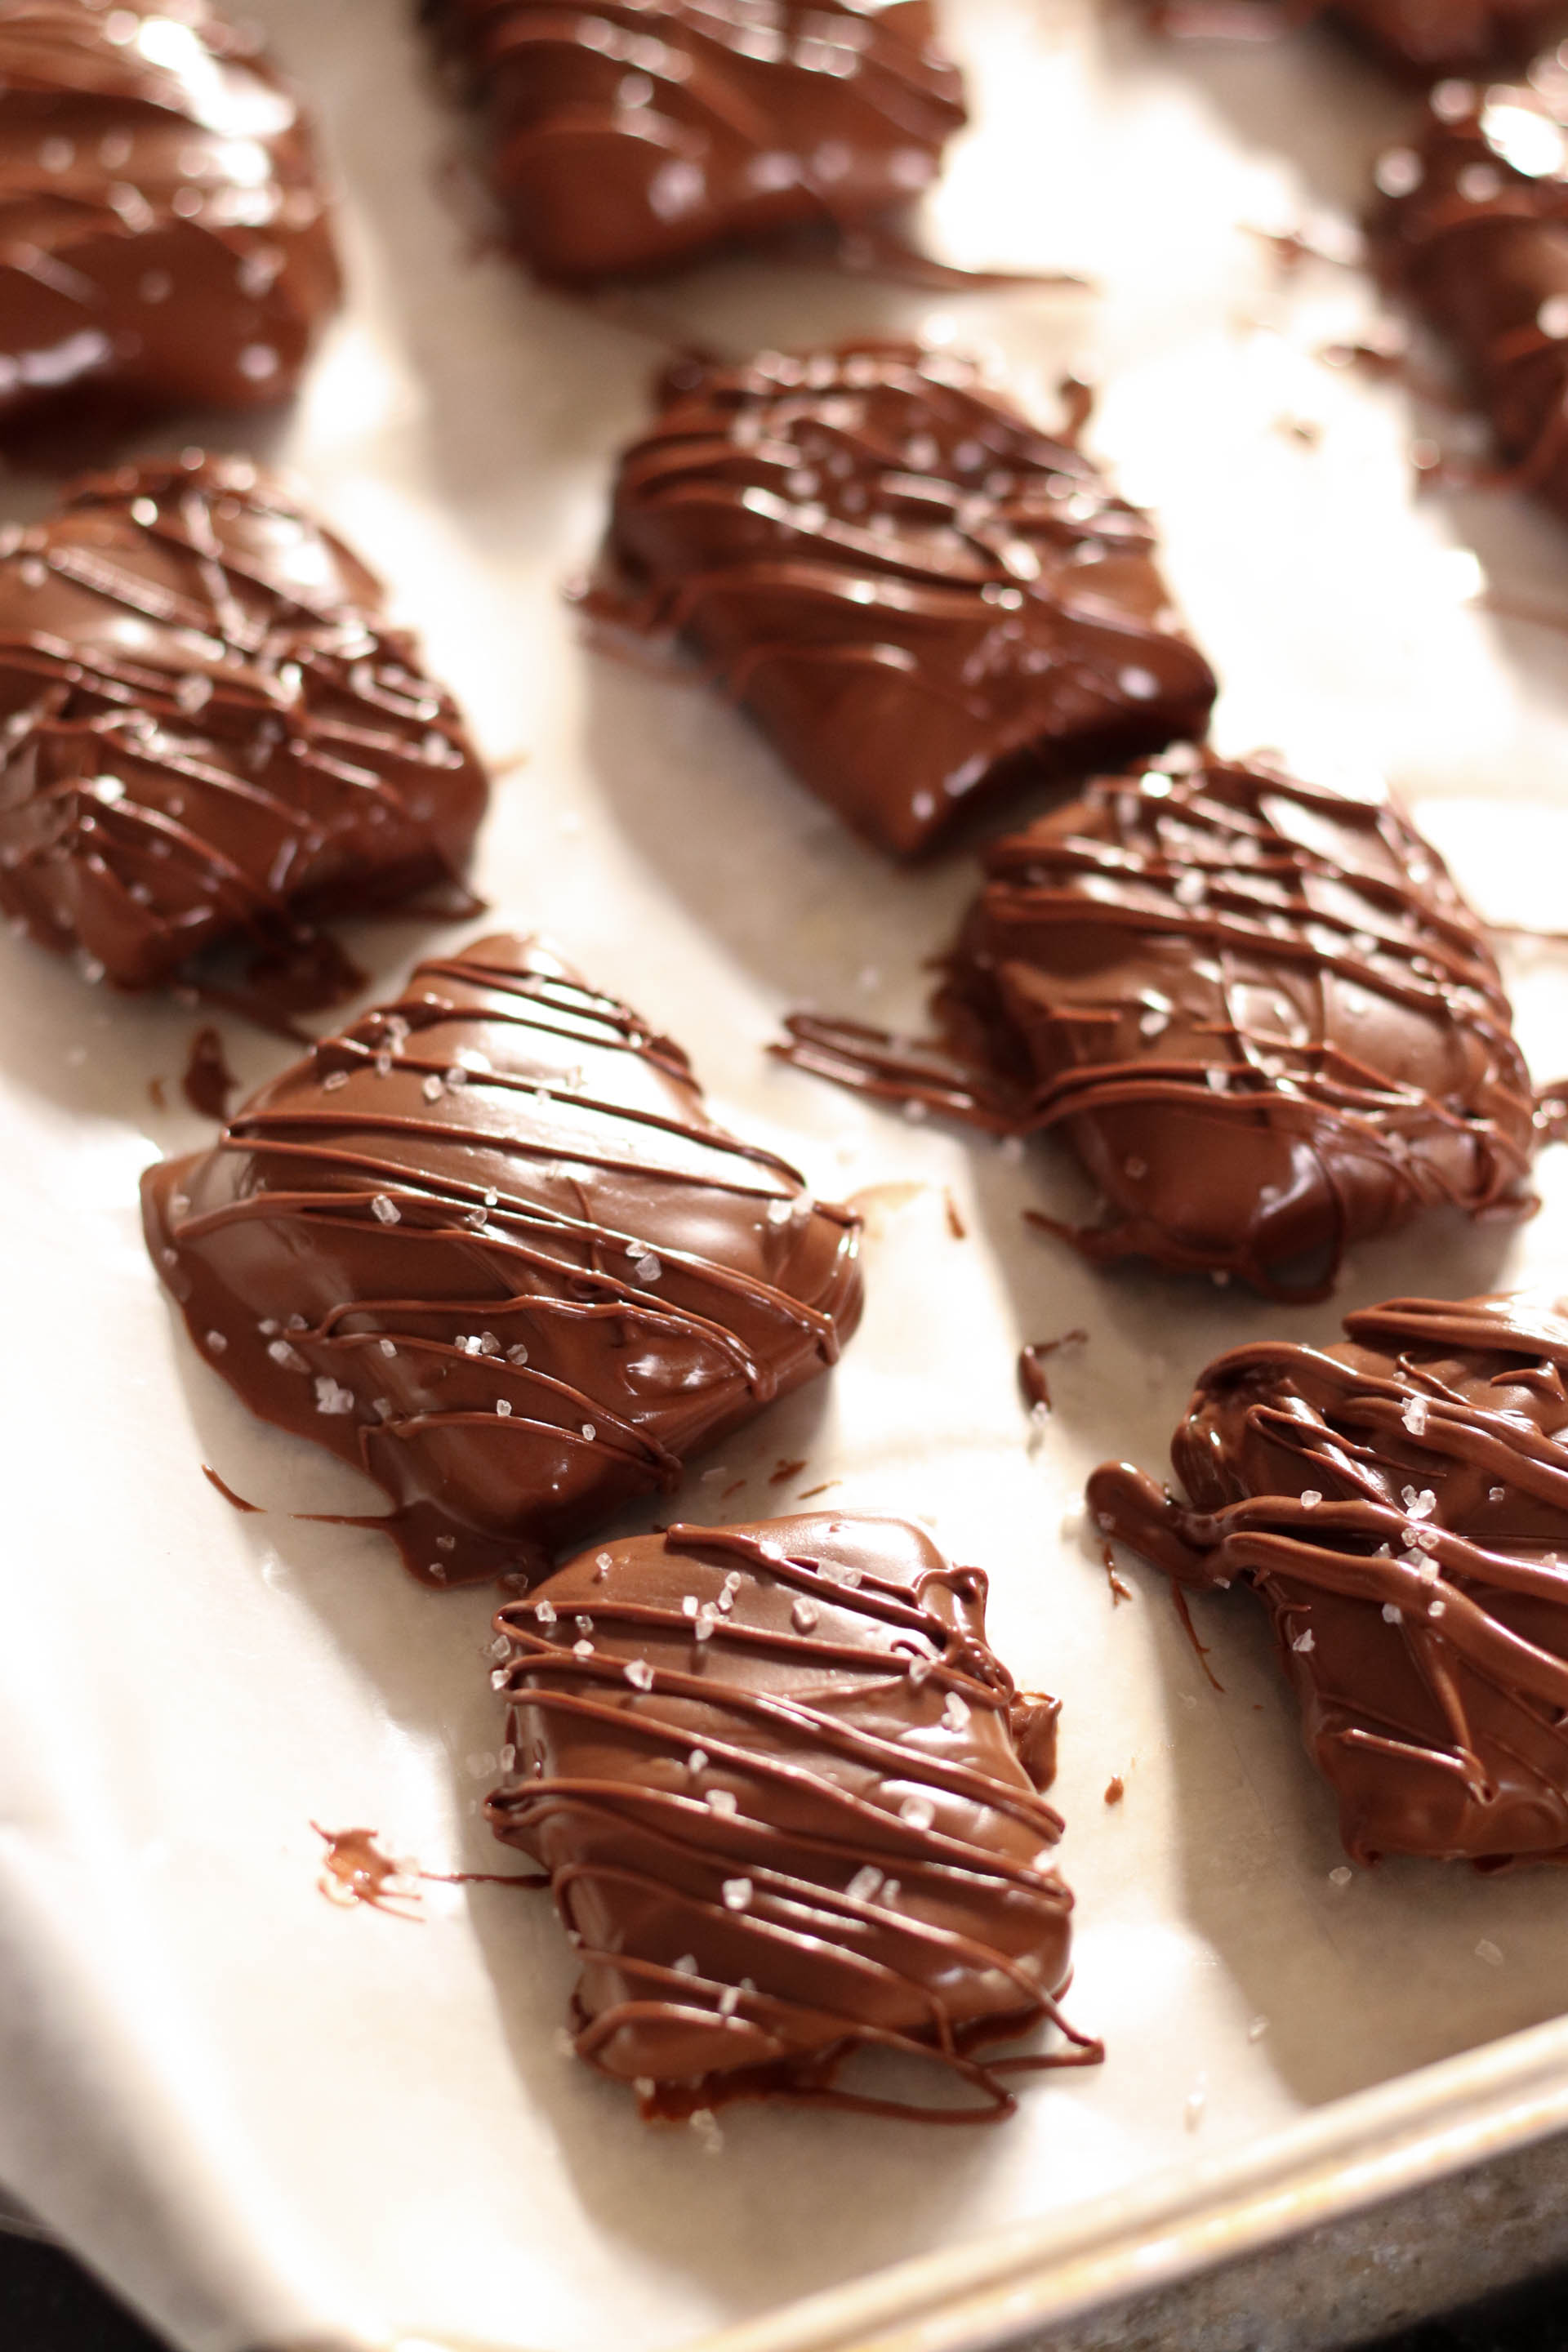 milk chocolate caramels with drizzled chocolate on top sprinkled salt on top